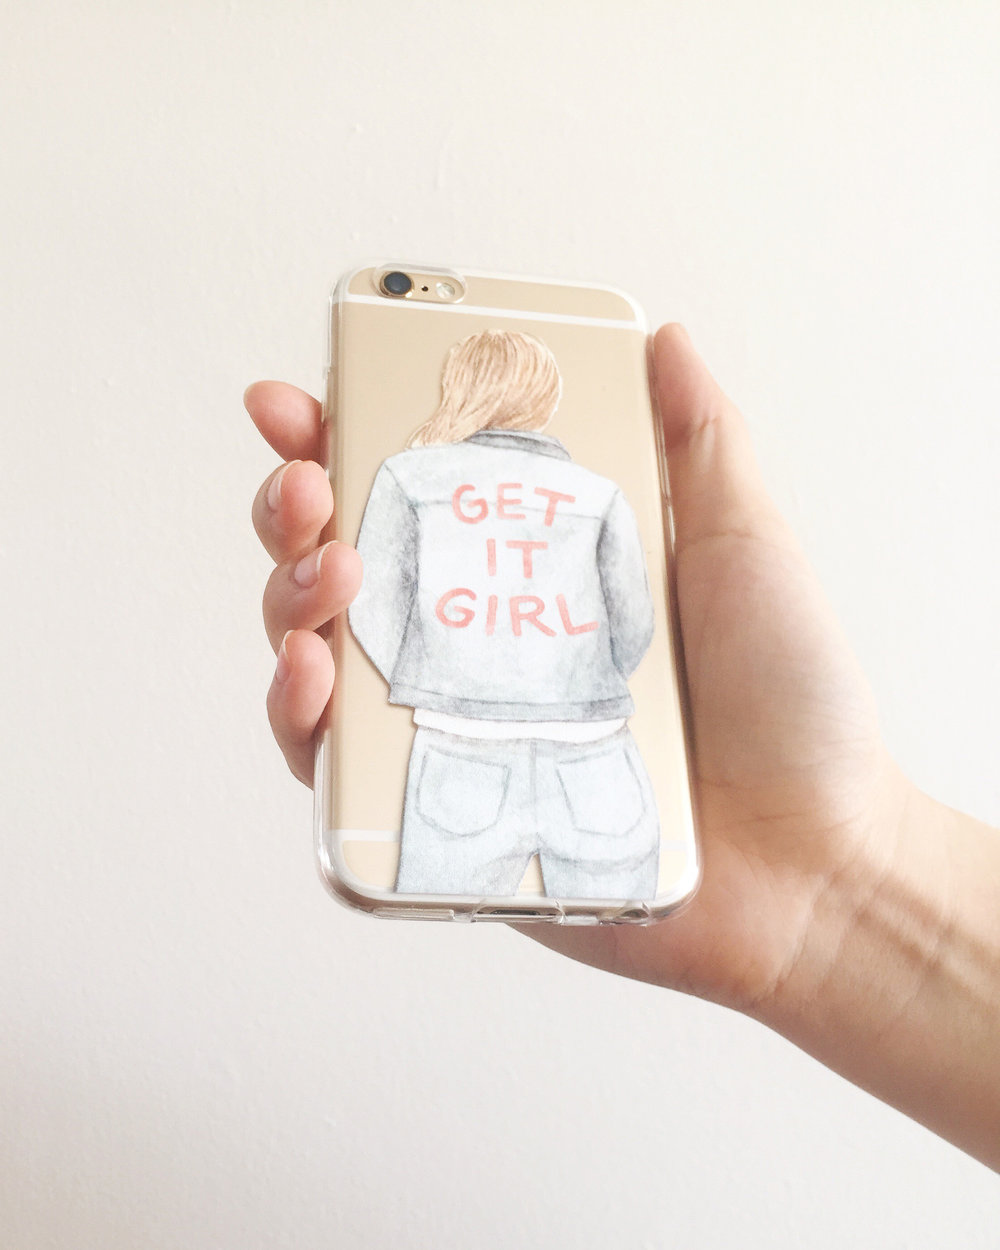 amy zhang creative x coding blonde | get it girl phone case | empowered boss babe collaboration